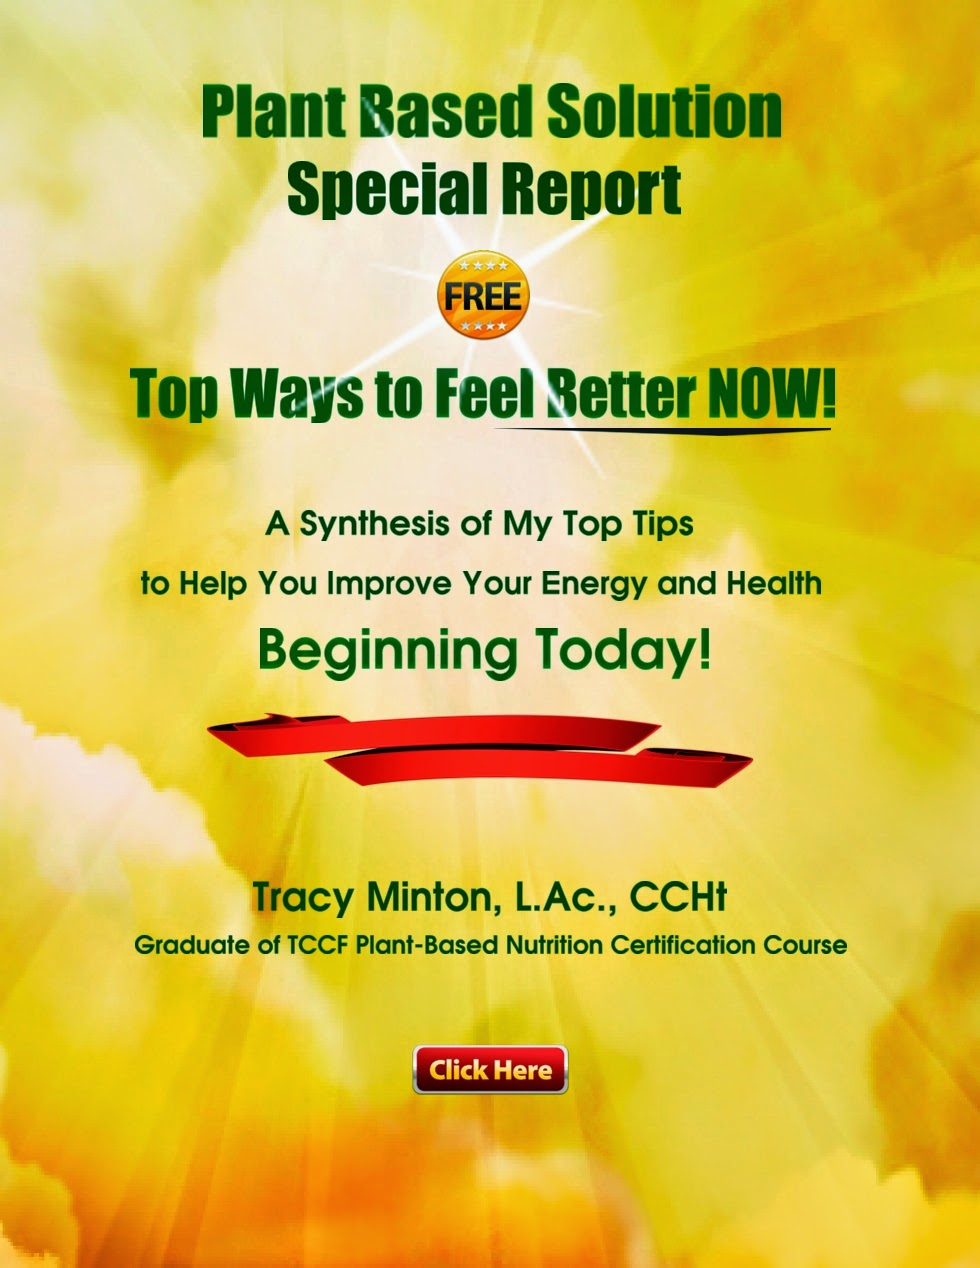 FREE! Top Tips to Improve Your Energy & Health